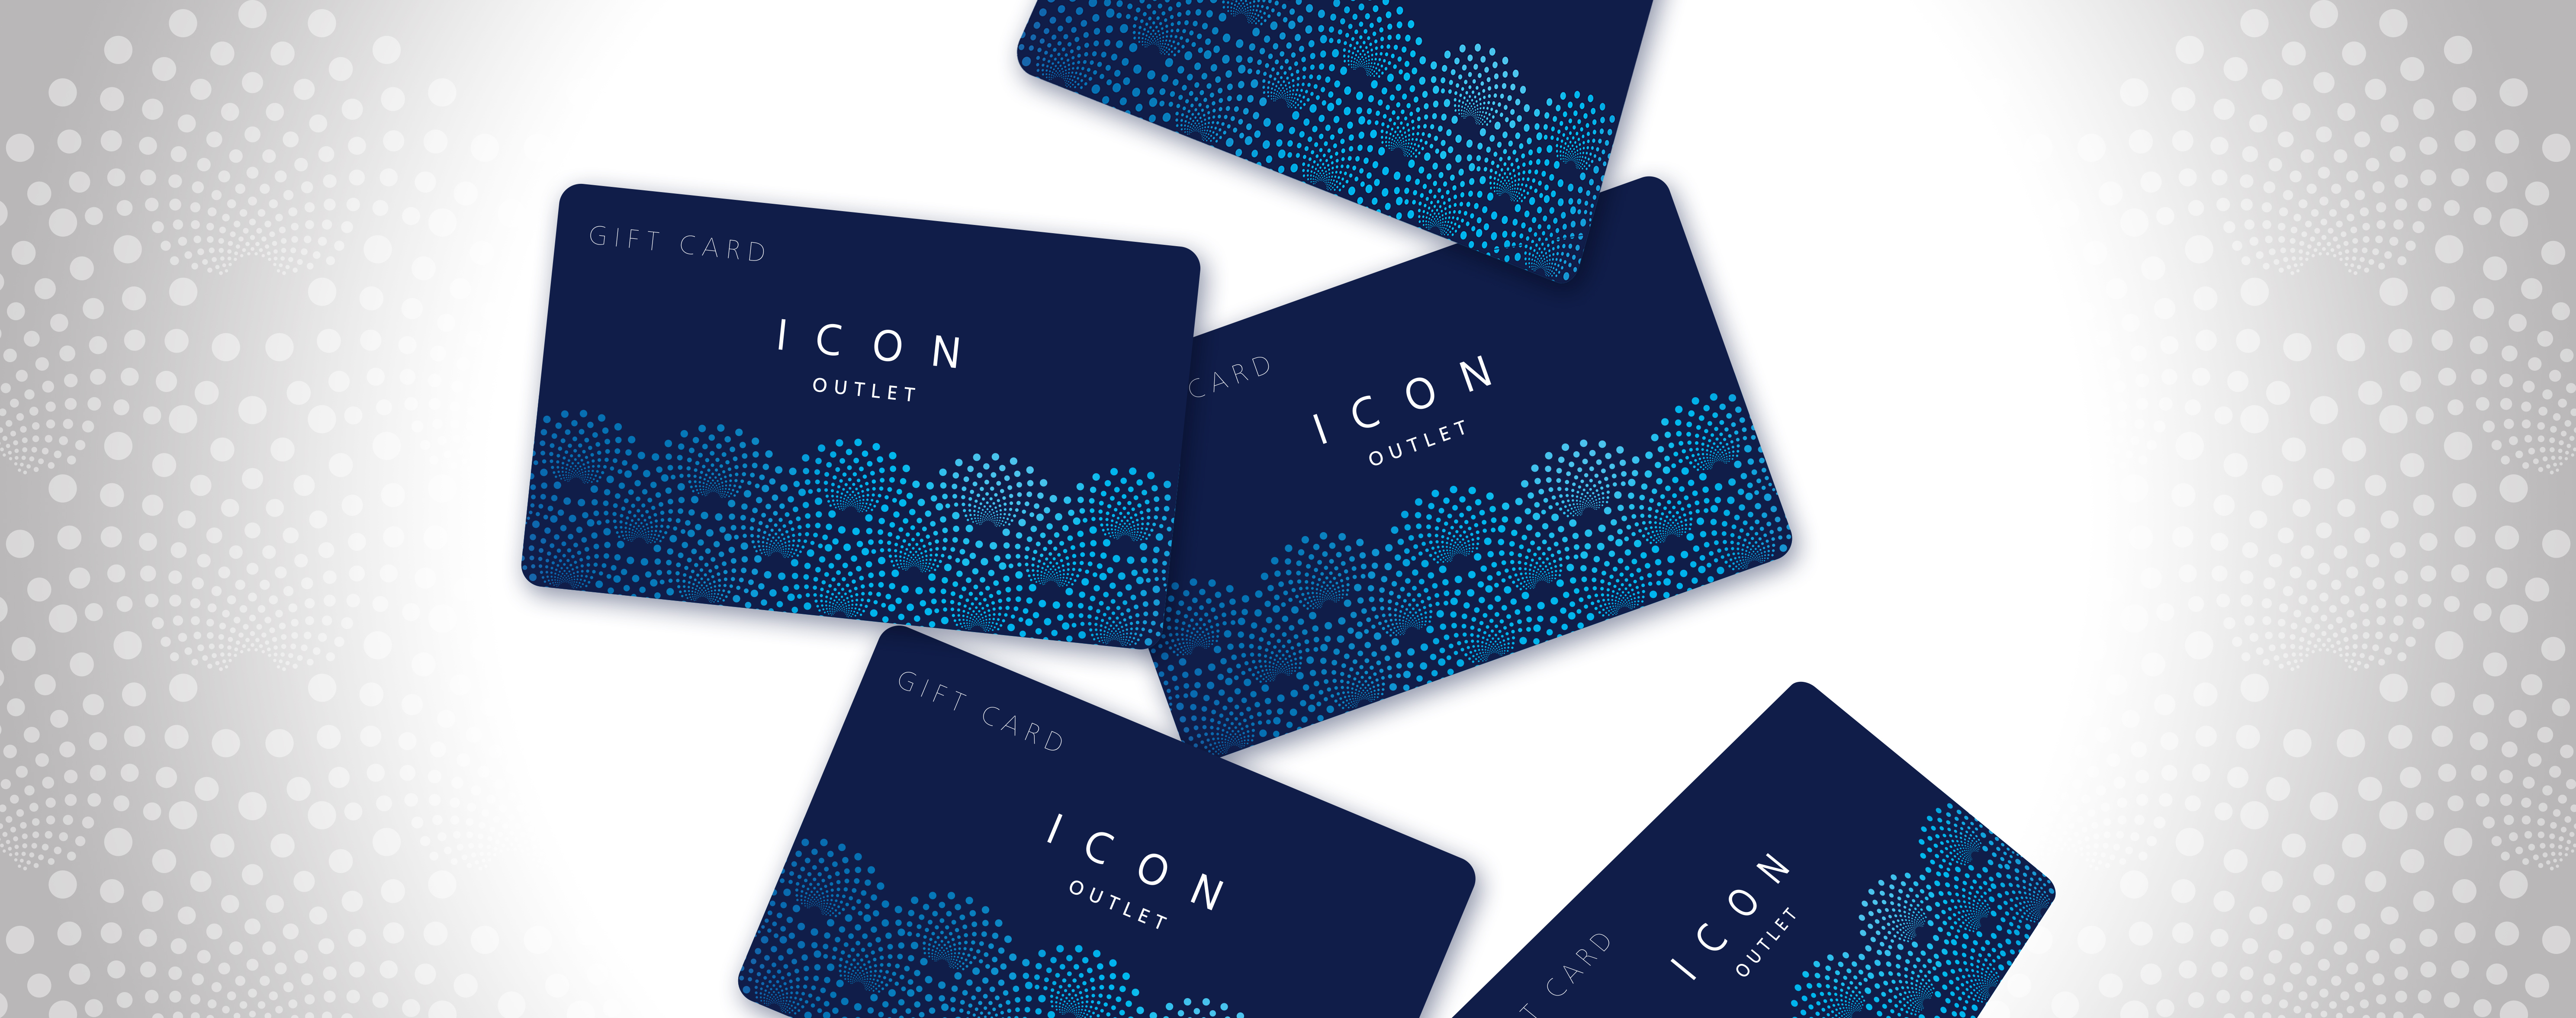 Gift Card - ICON Outlet at The O2 - Outlet Shopping London